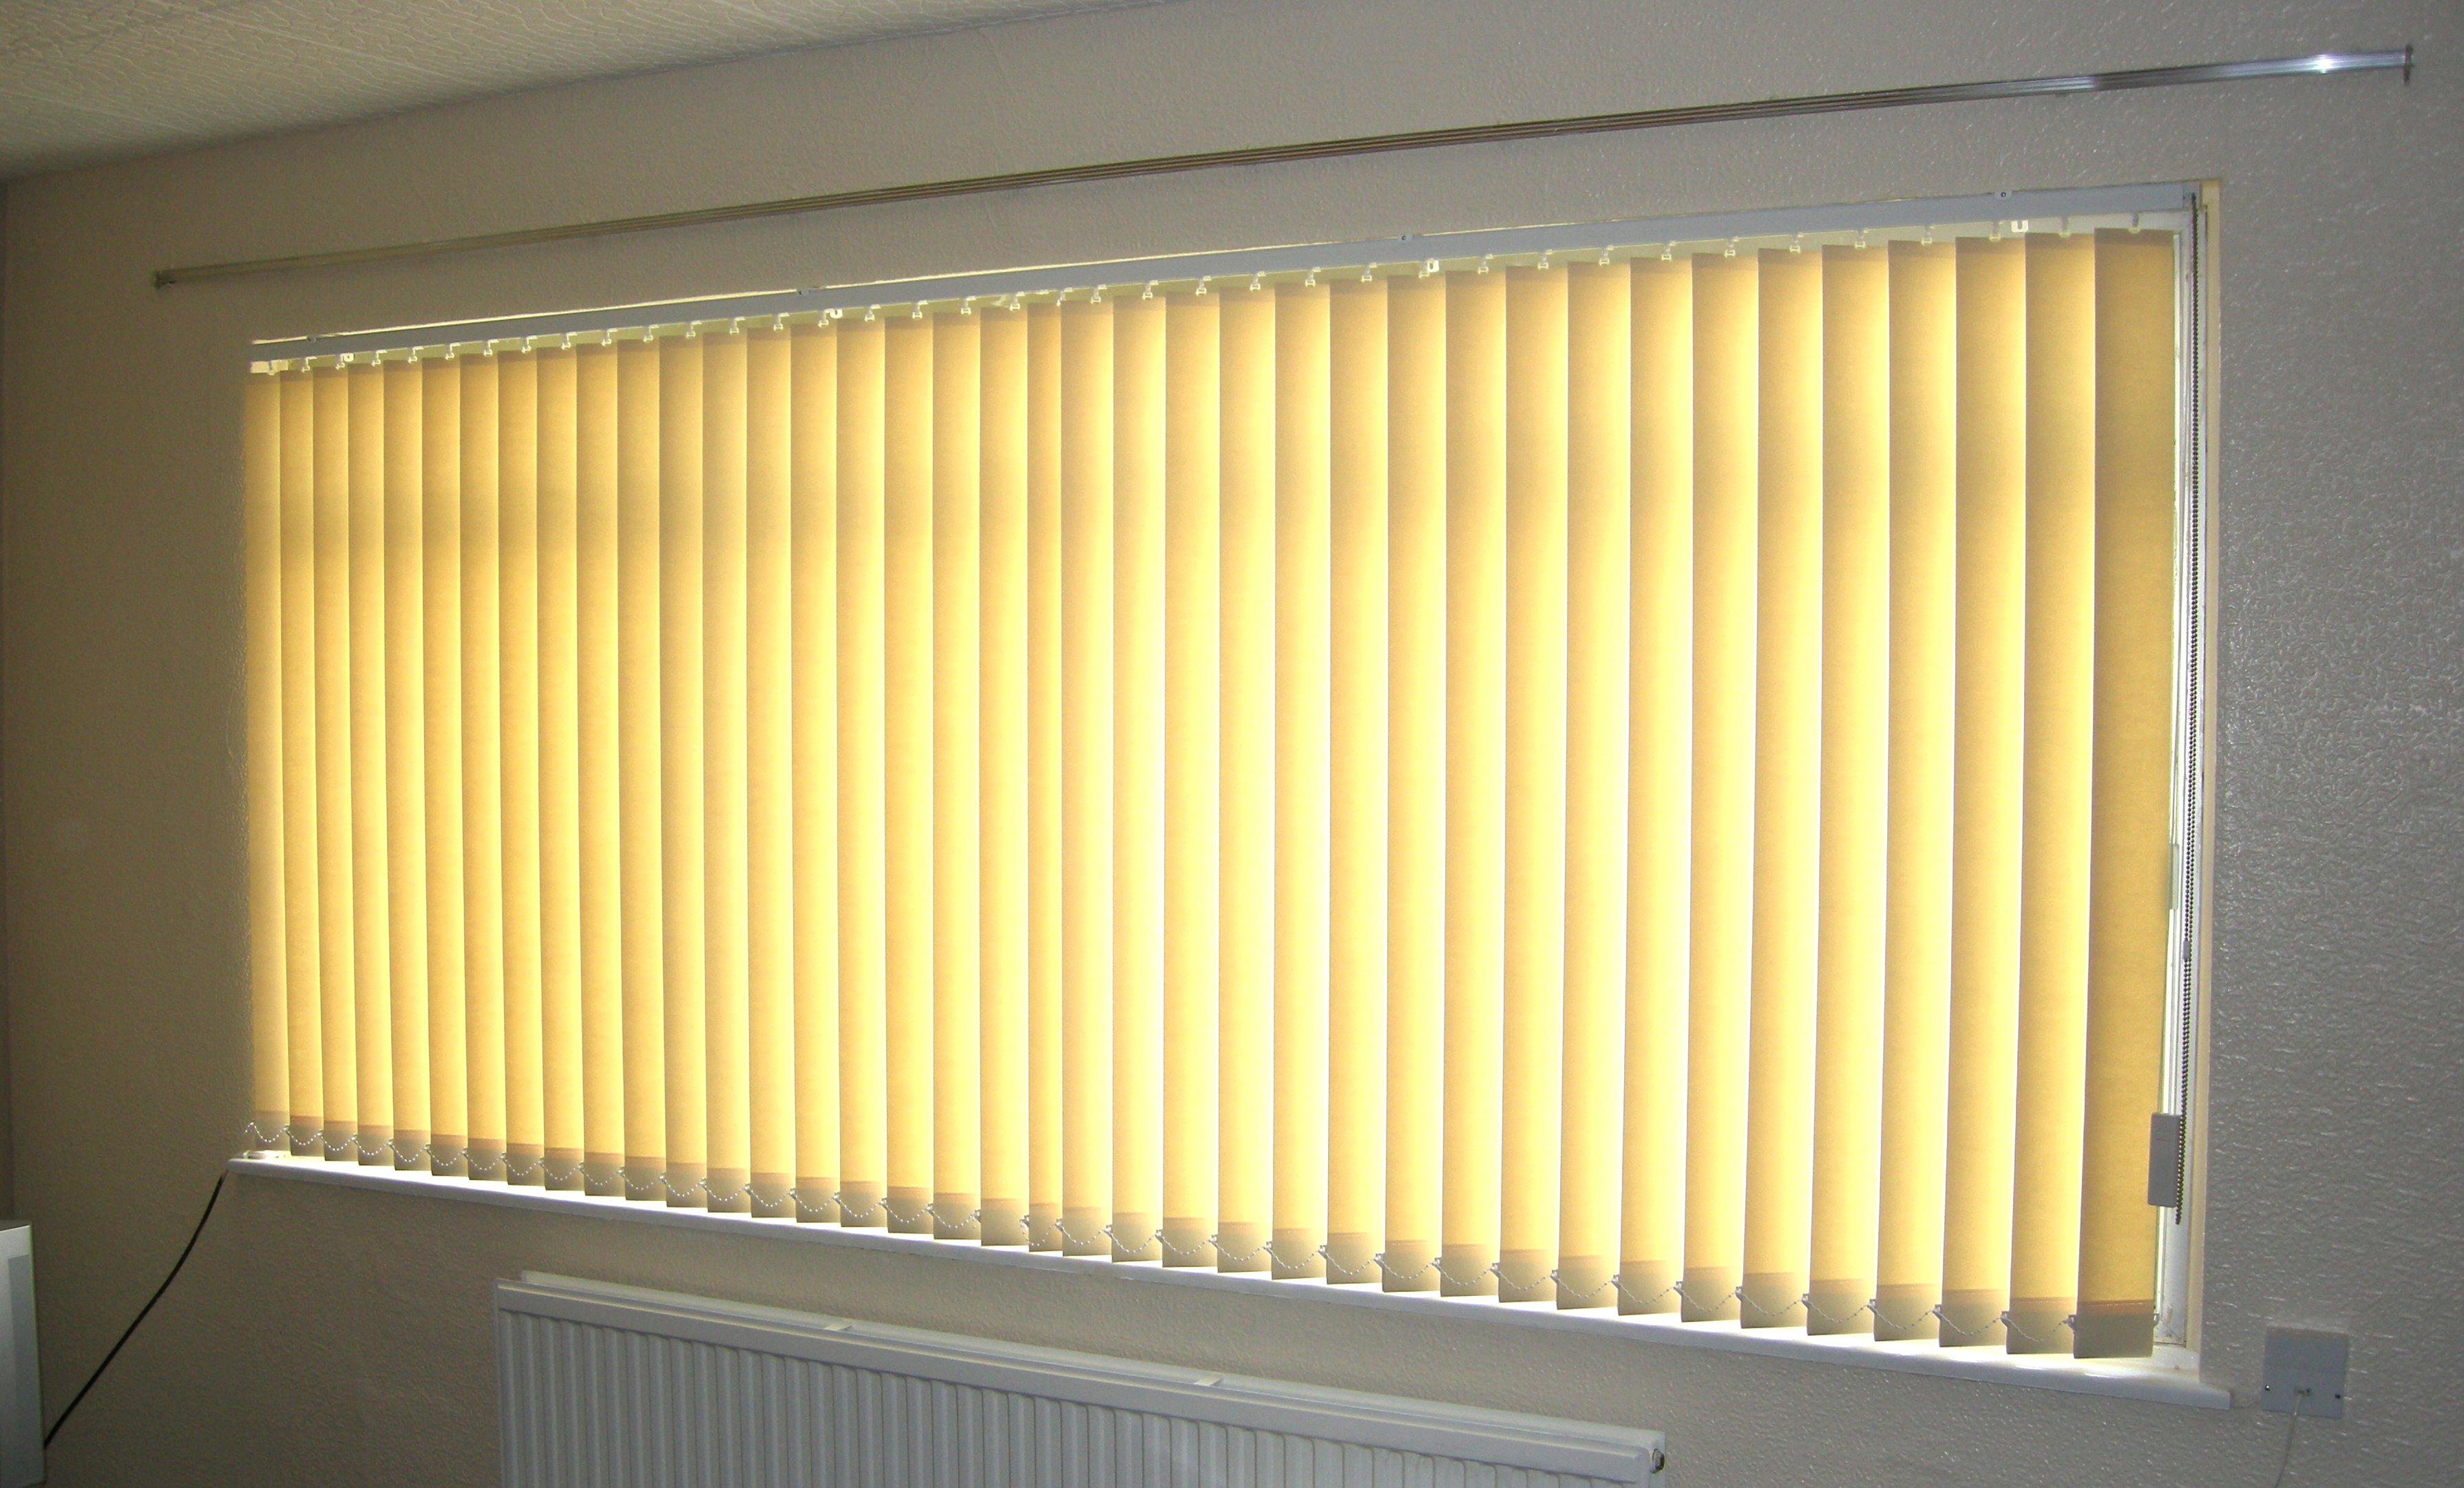 Most common types of window blinds homesfeed Types of blinds